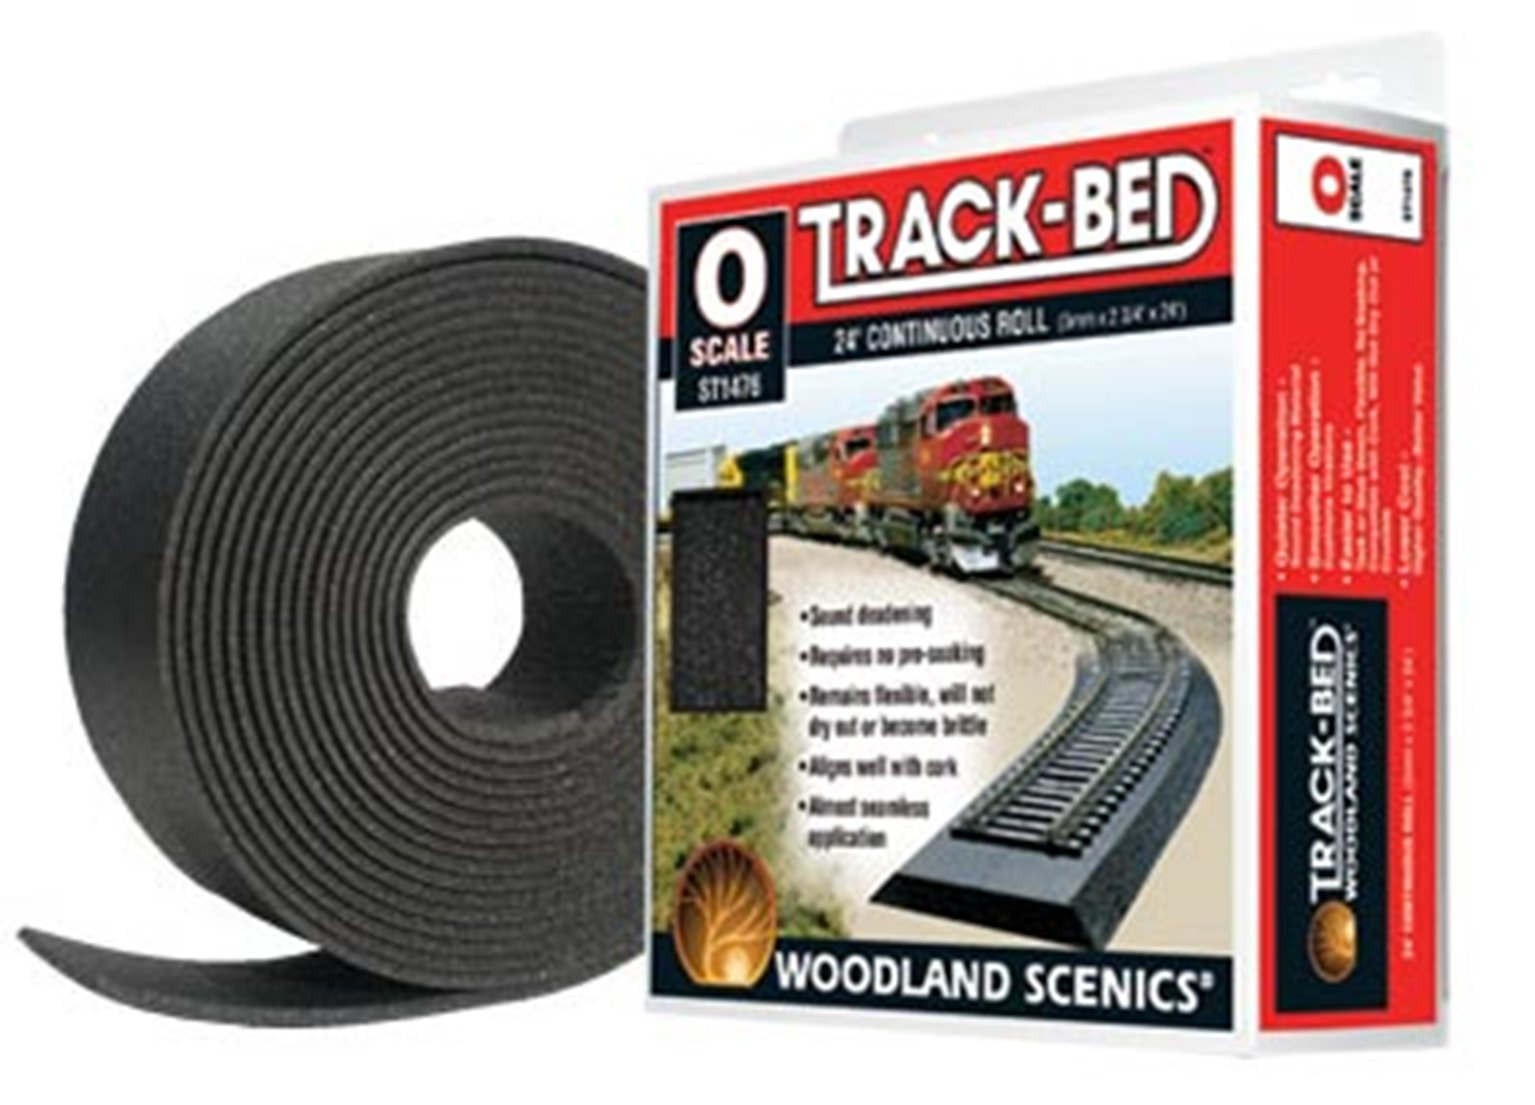 O Scale Trackbed Roll 24ft.